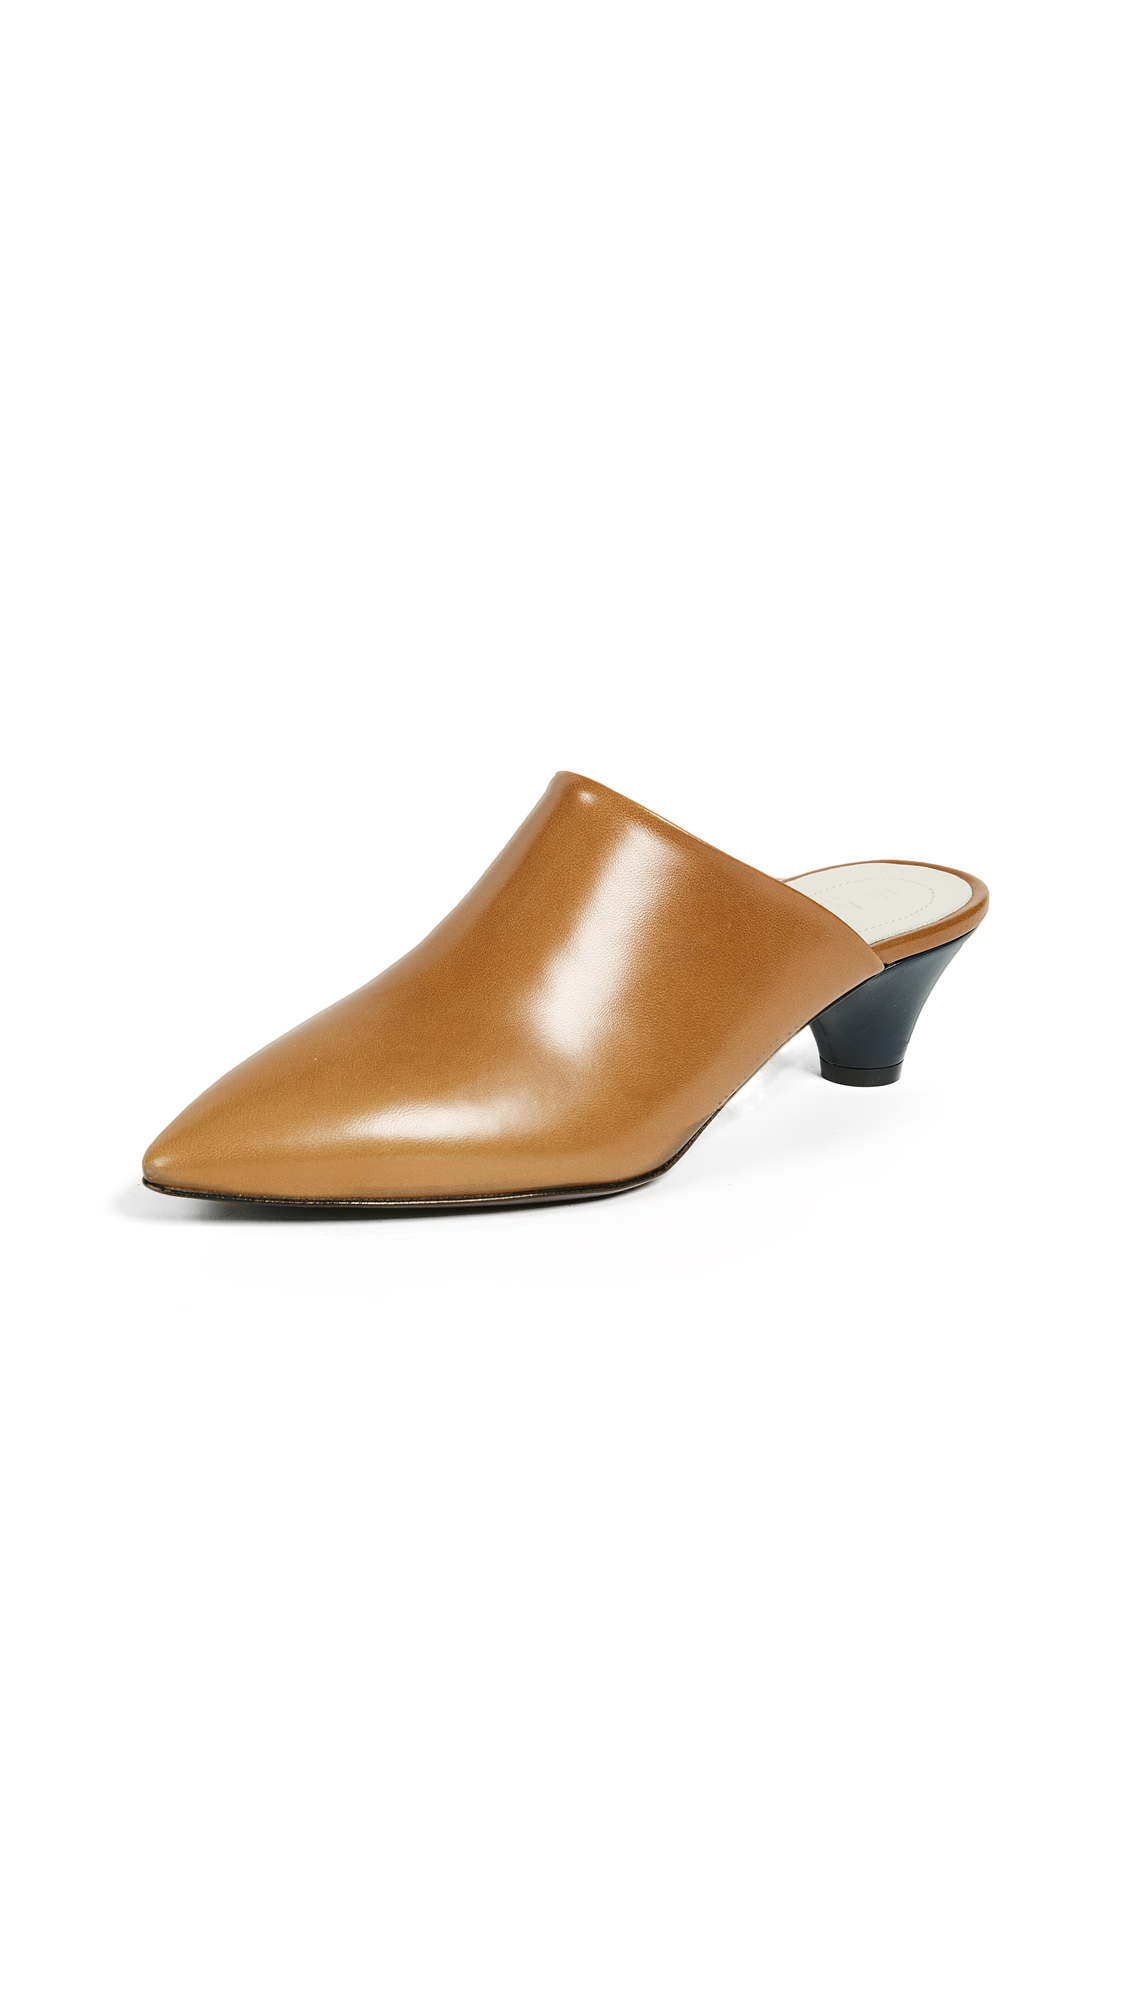 Marni Sabot Mule Pumps - Leather